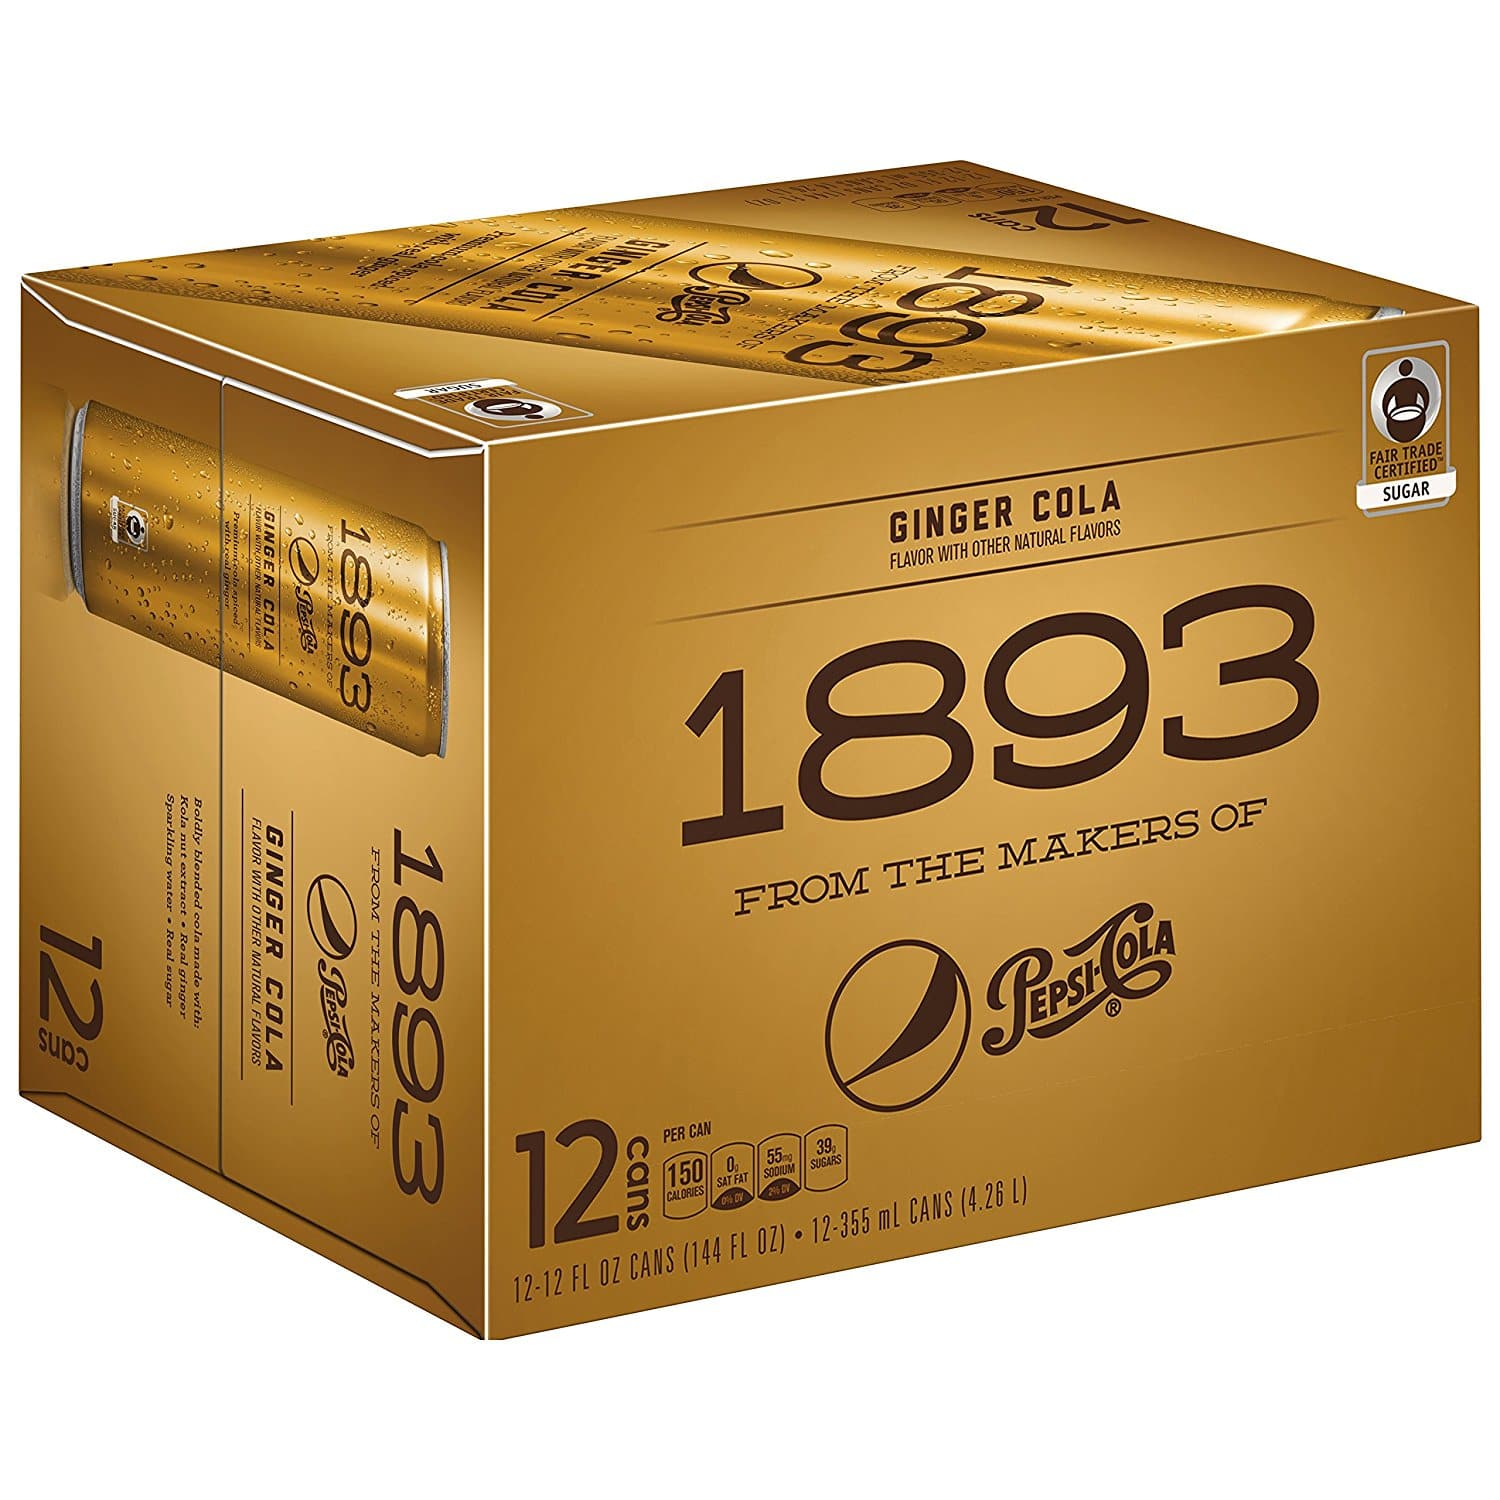 12-Pack Pepsi Cola 1893: Ginger Cola $6.73 (Amazon Subscribe & Save Add-on Item + 20% Coupon)